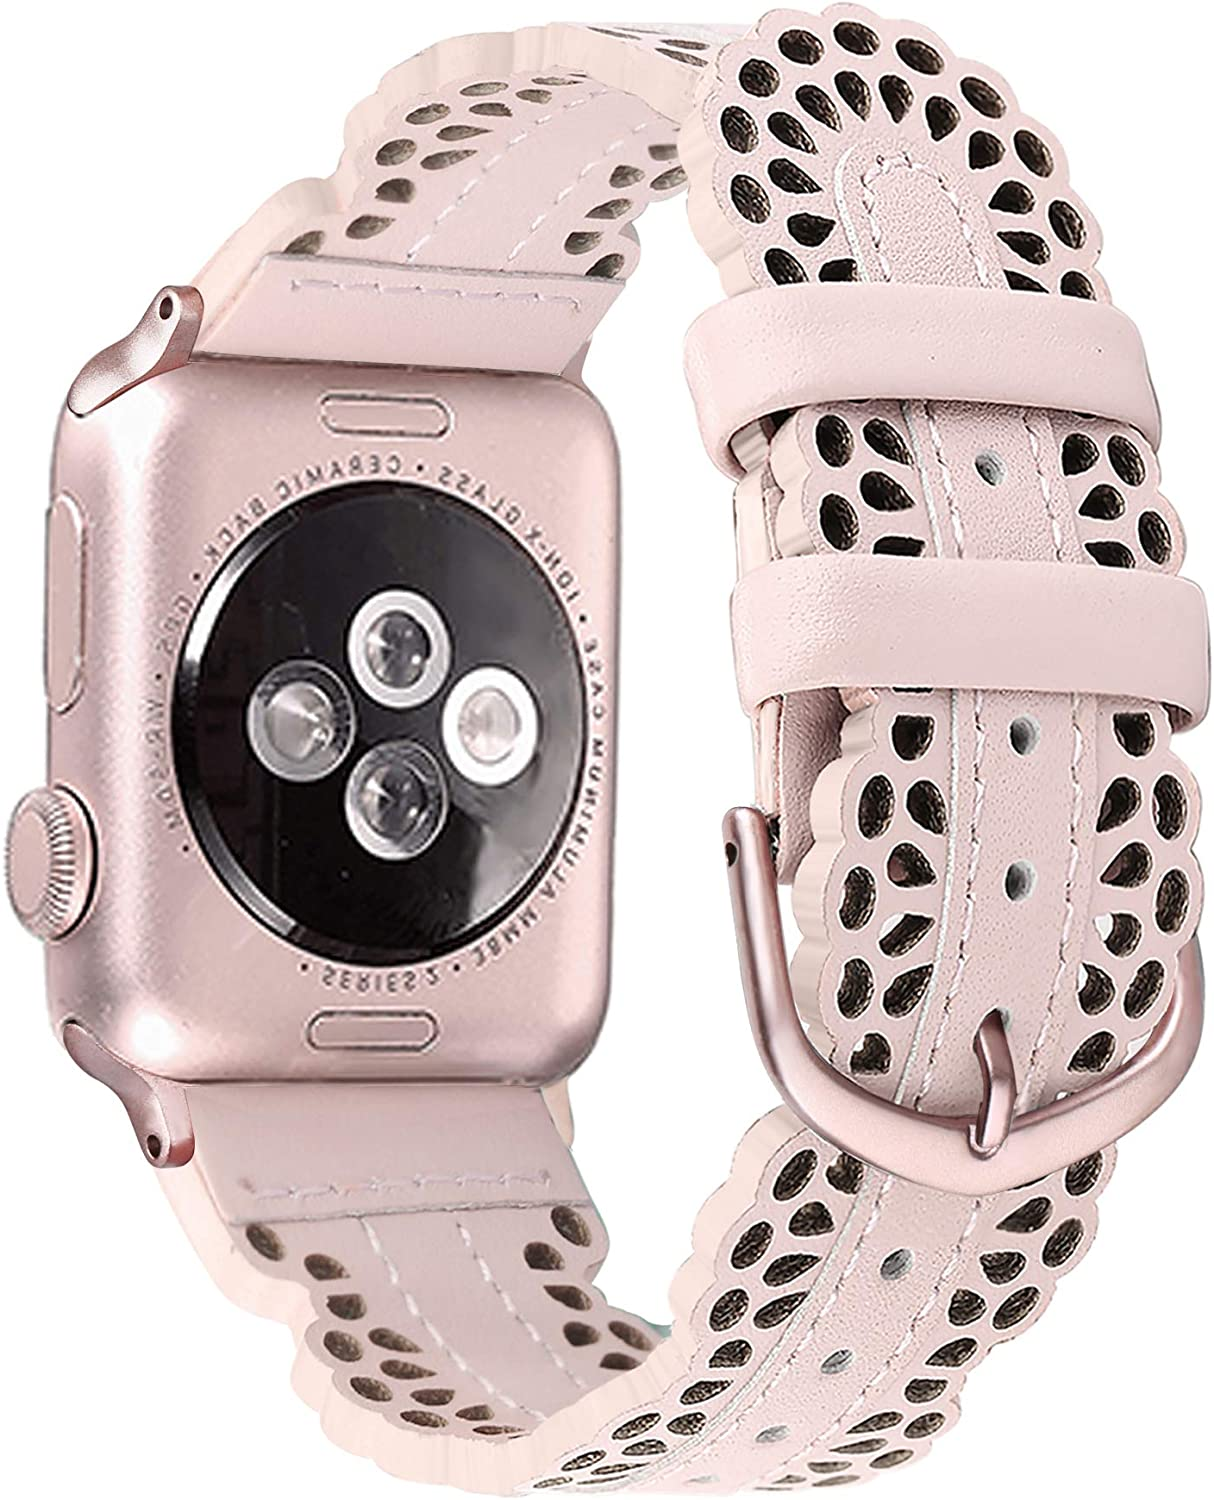 Secbolt Leather Bands Compatible with Apple Watch Band 38mm 40mm iWatch SE Series 6 5 4 3 2 1, Breathable Chic Lace Leather Strap for Women, Pink with Rose Gold Connector